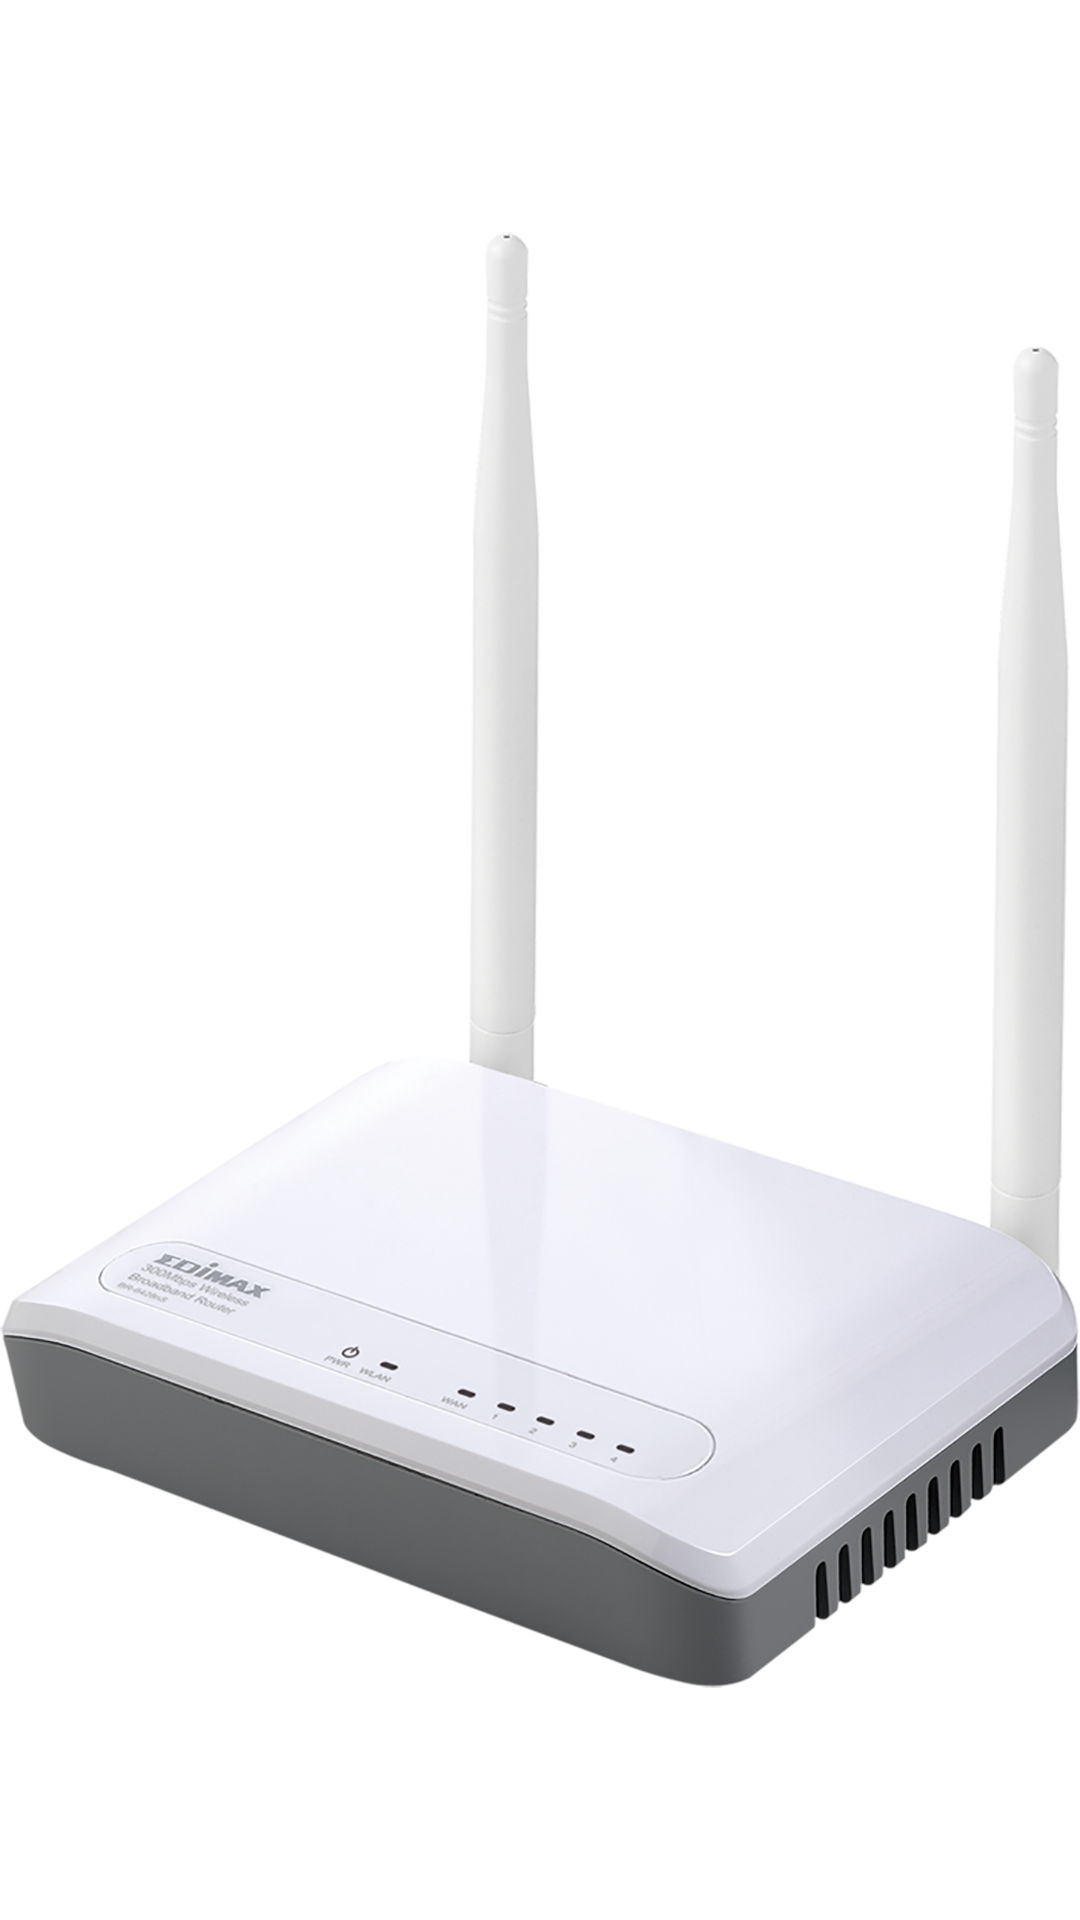 Edimax BR-6428nS 300 Mbps Wireless without Modem Router (White)